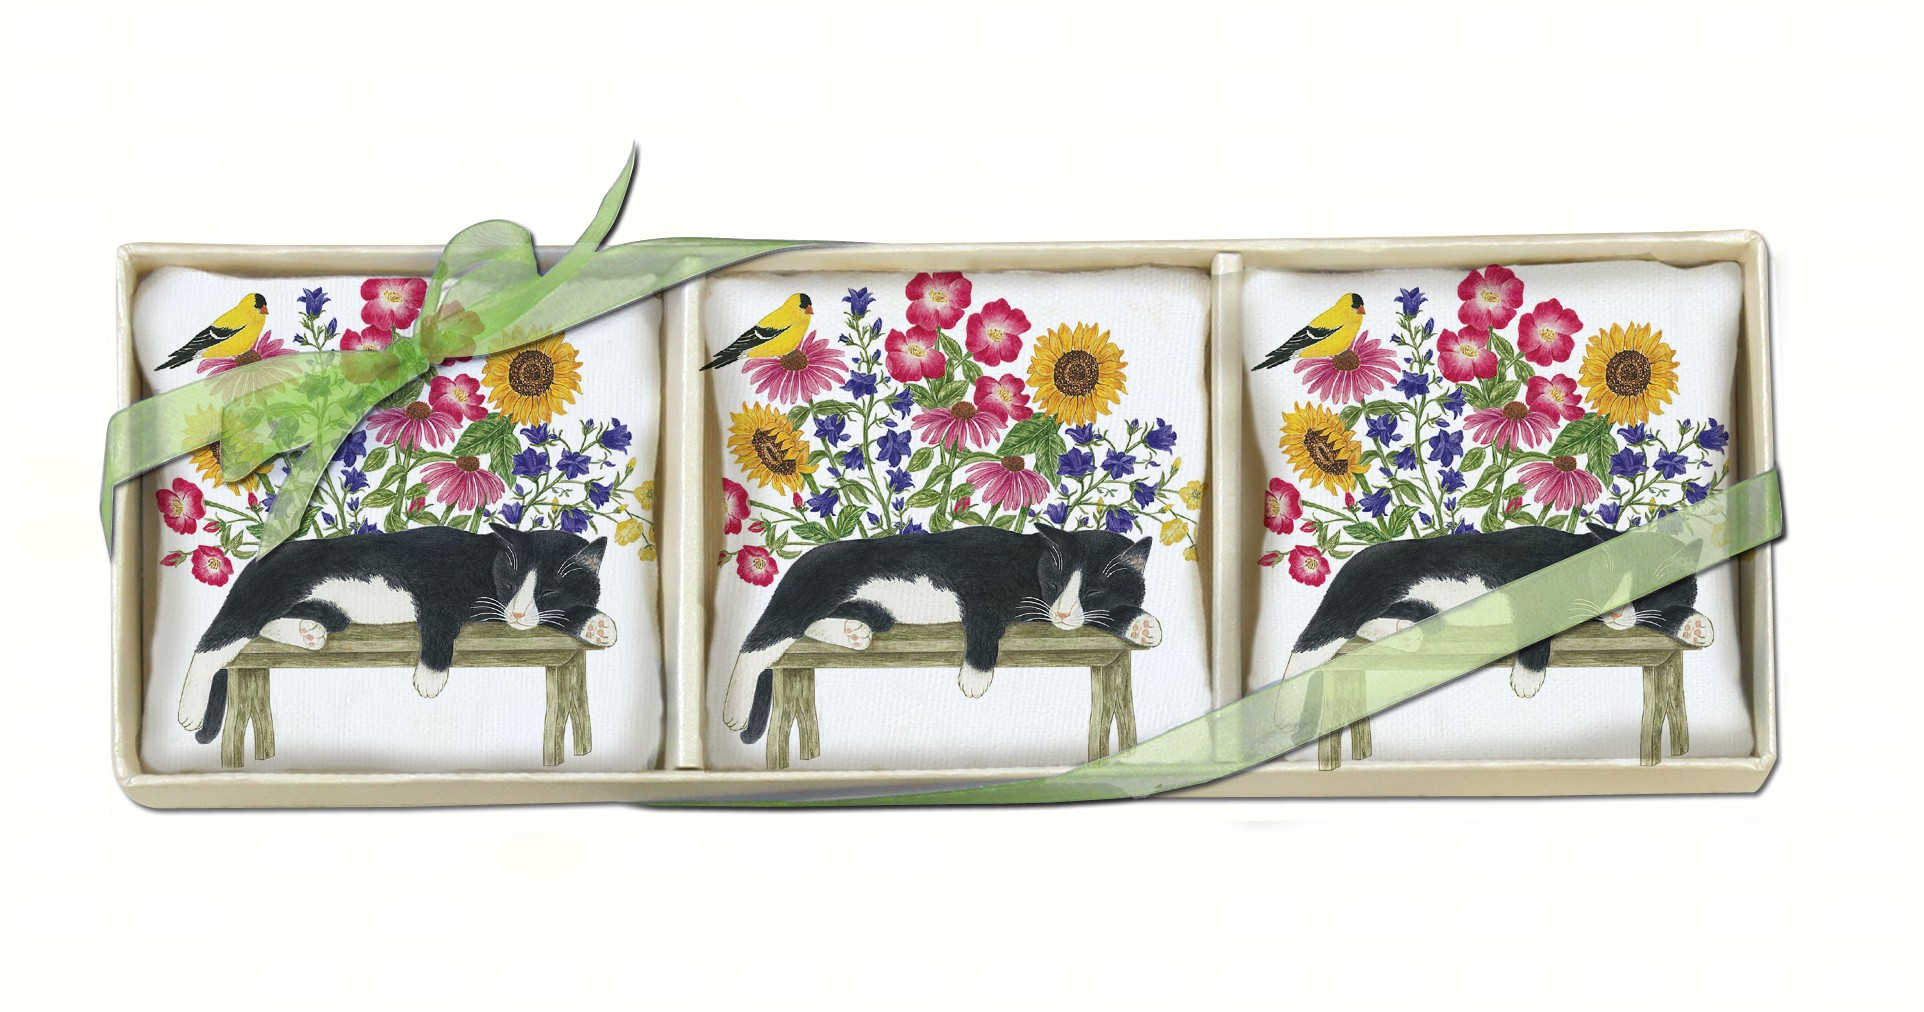 Cat on Bench Gift Boxed Lavender Sachets (3 pcs)